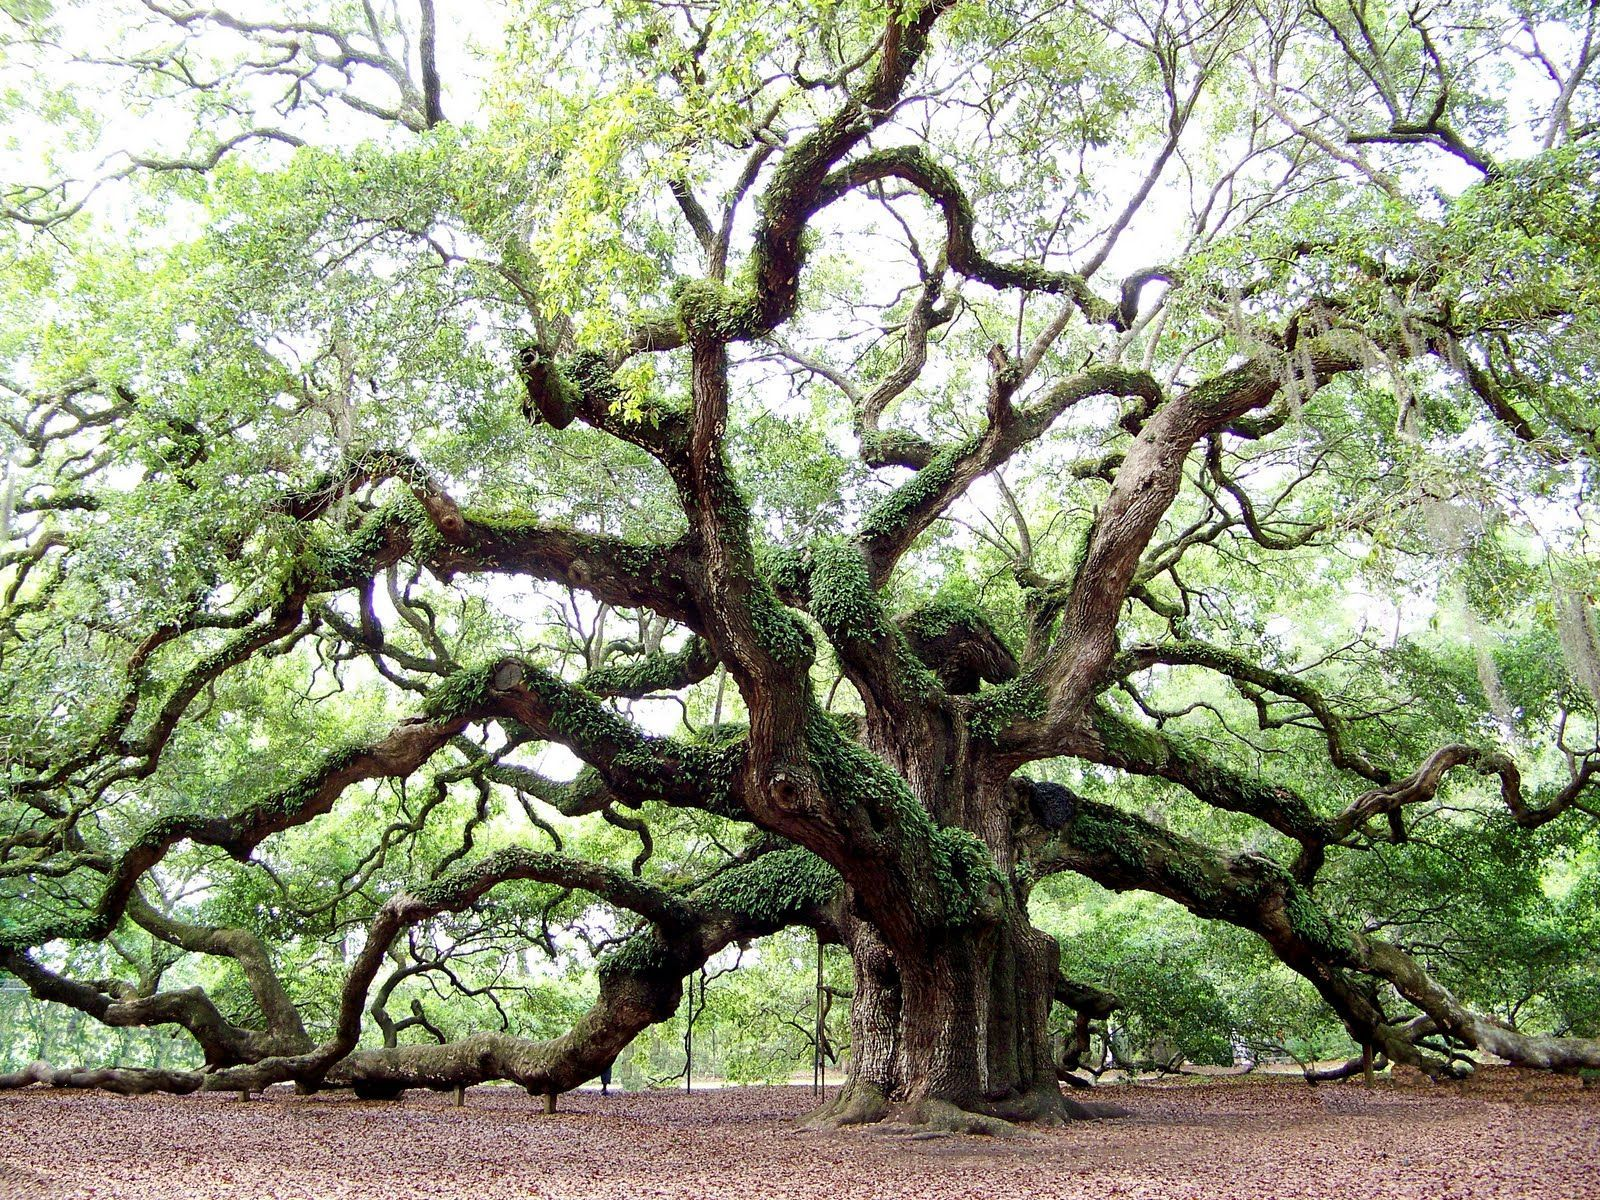 Angel Oak on Johns Island, SC